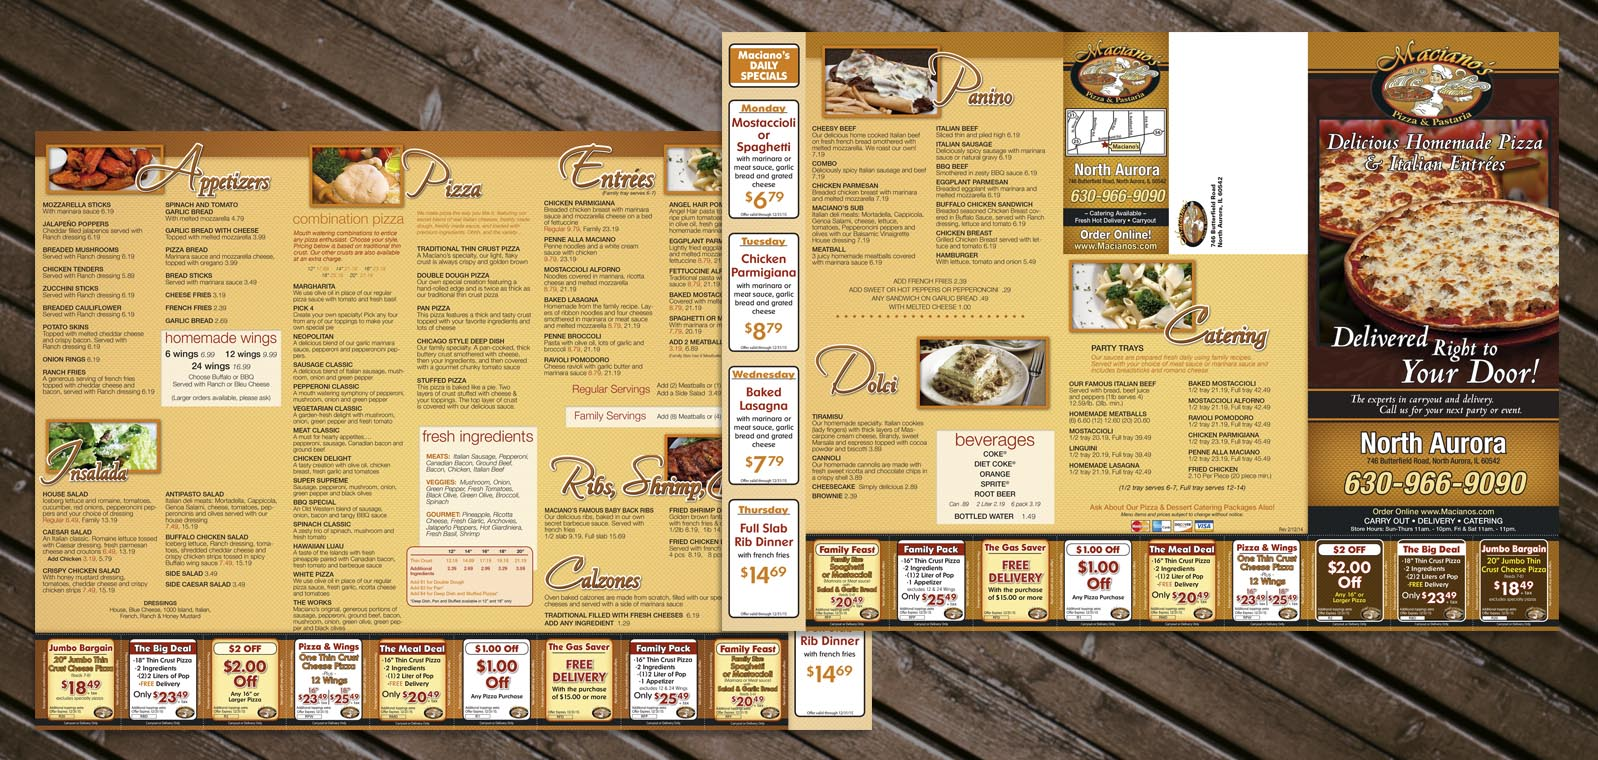 Carryout menu design and Mailer menu design by Roselle Graphic Designer Controlled Color, Inc.